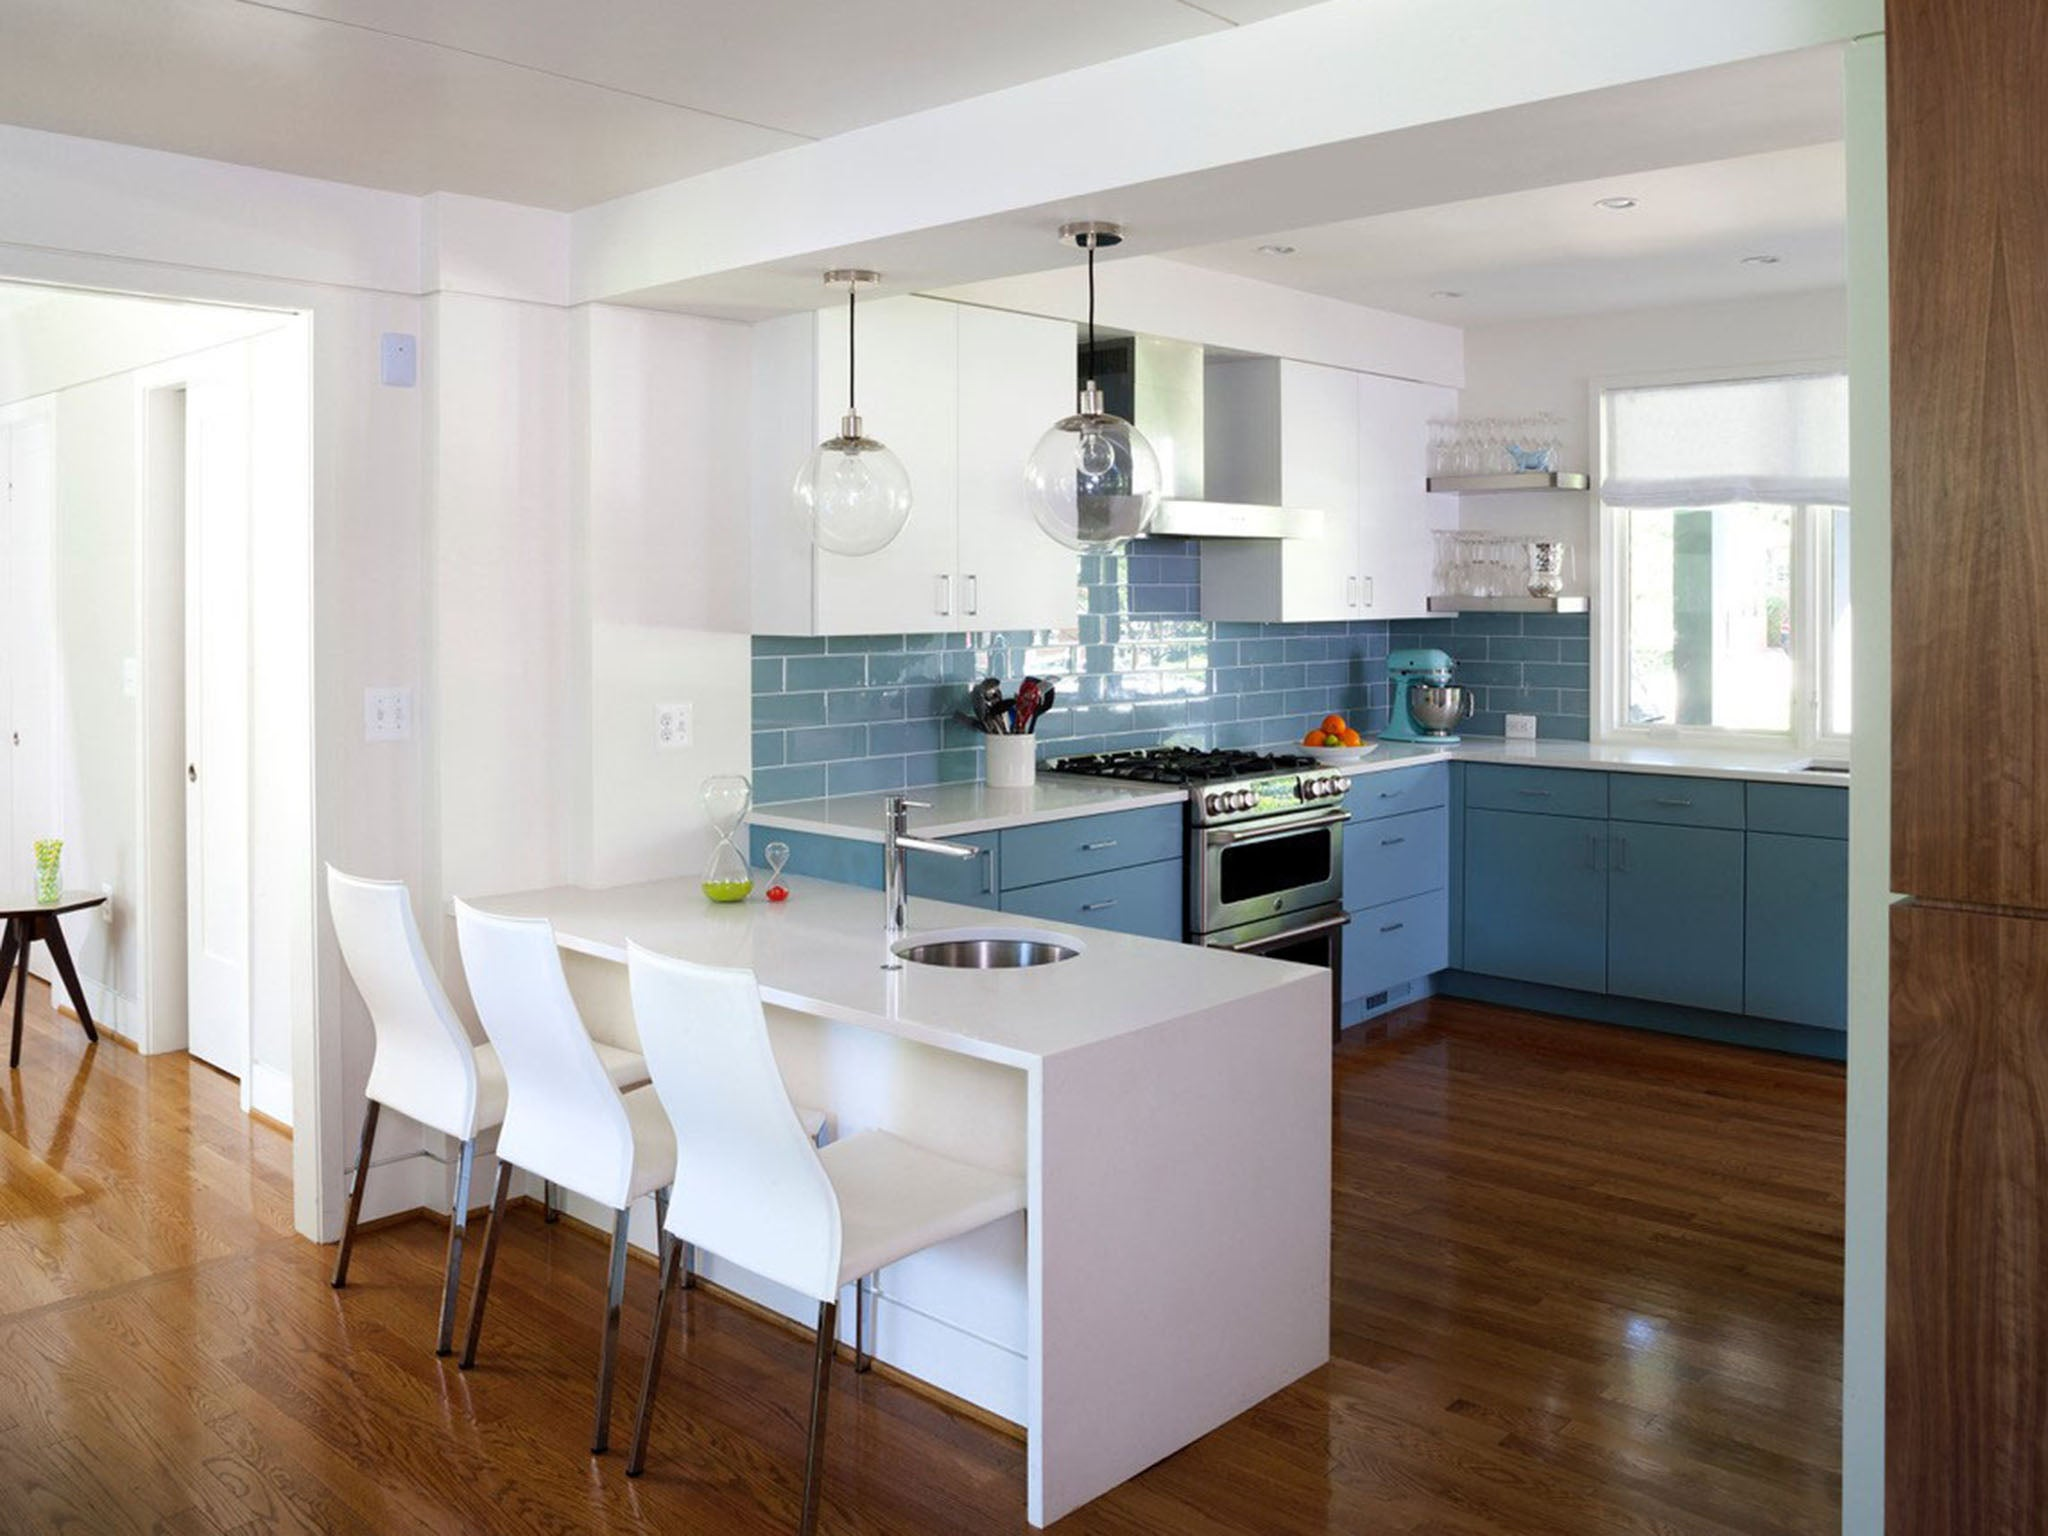 Sick of all-white kitchens? Here are six ways to spice things up ...